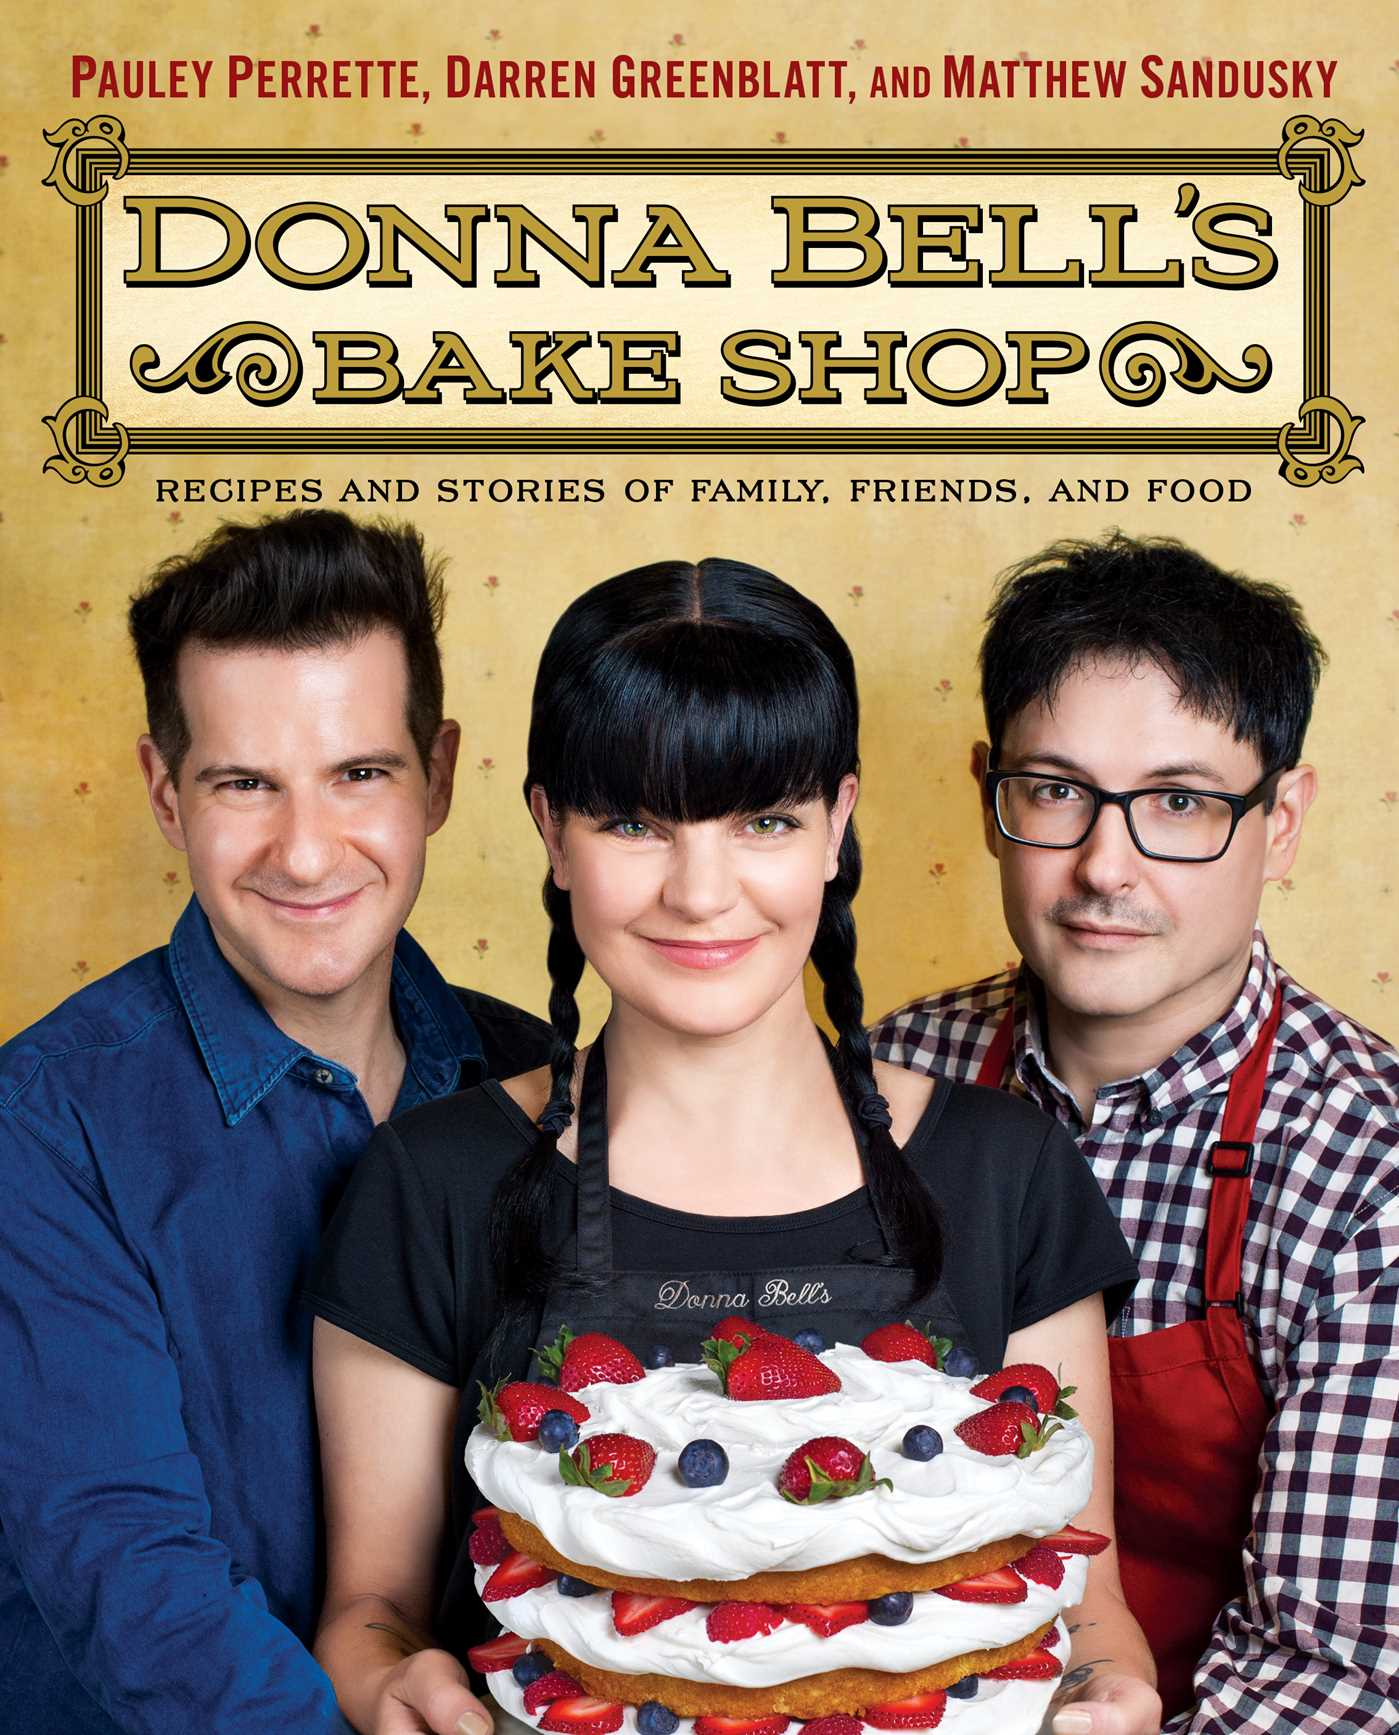 donna-bells-bake-shop-9781476771120_hr-1.jpg